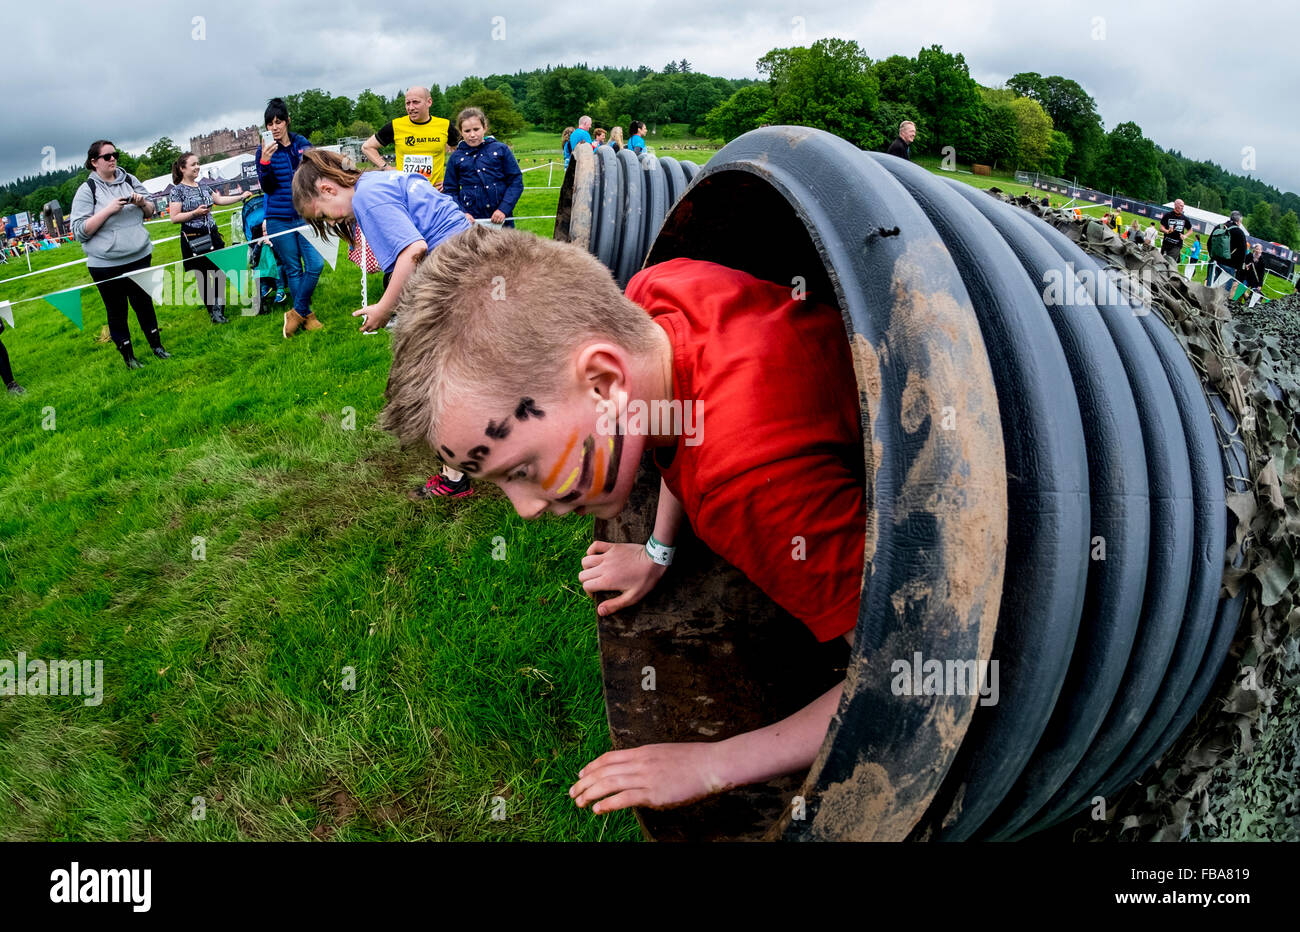 Shoot the fruit -  Action In The Fruit Shoot Mini Mudder Challenge At Drumlanrig Castle Dumfries And Galloway